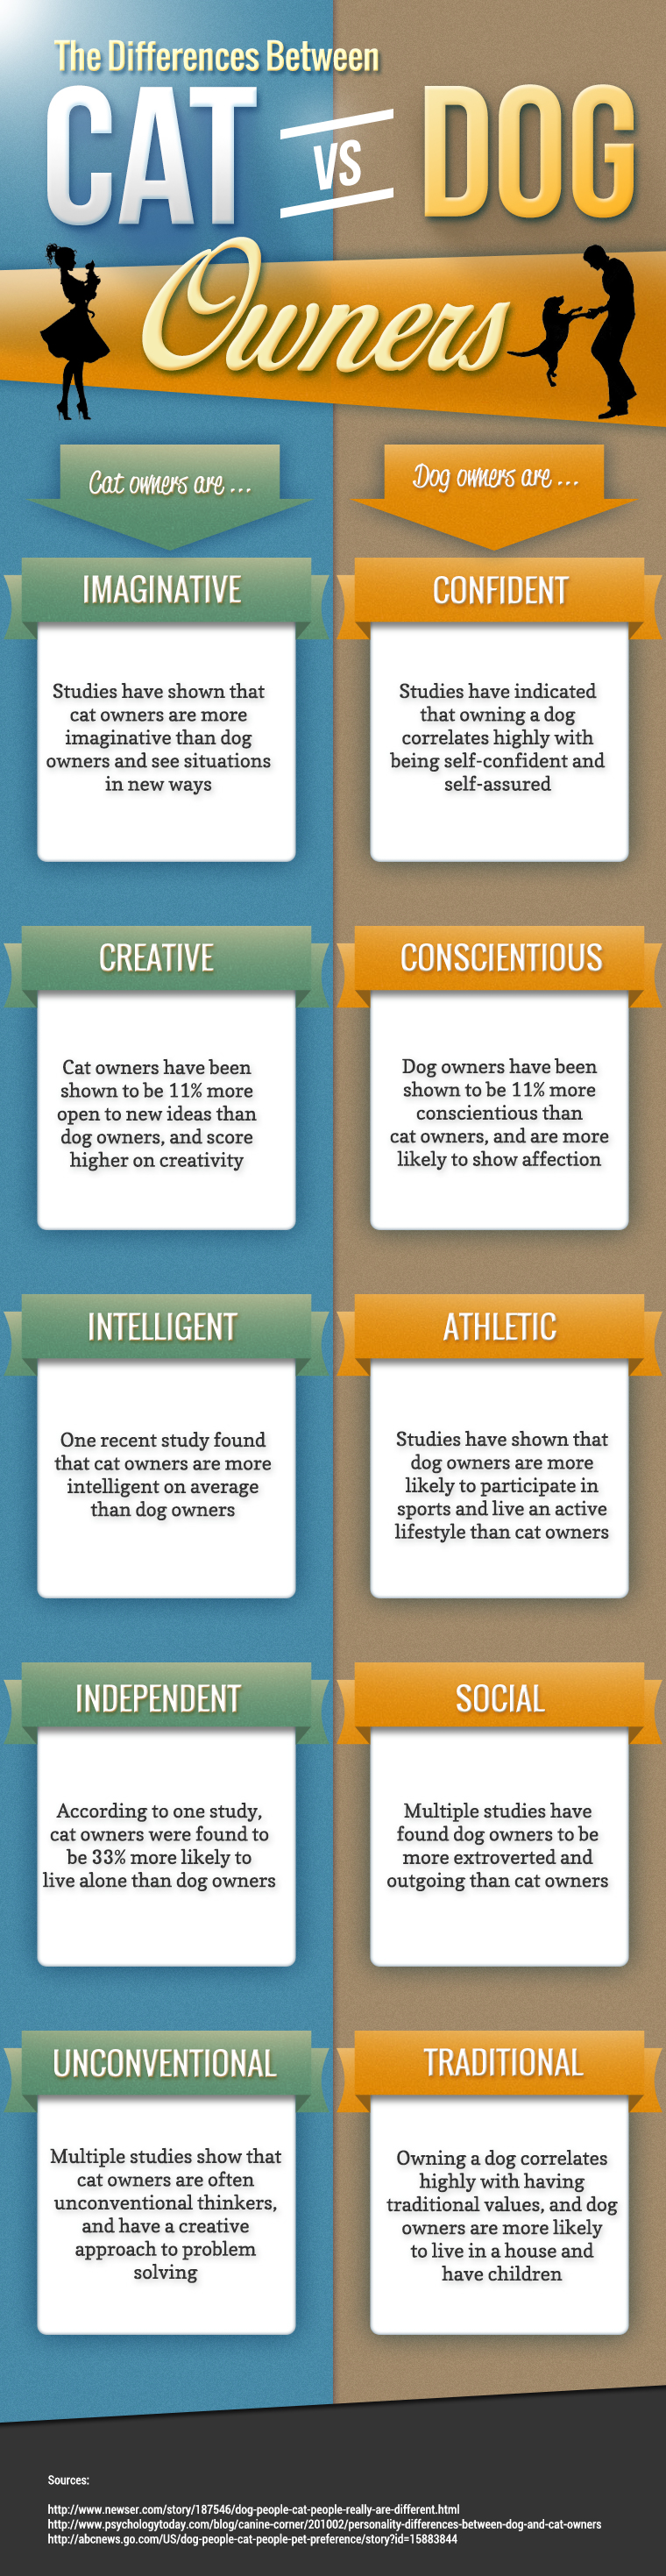 Differences Between Cat Dog Owners